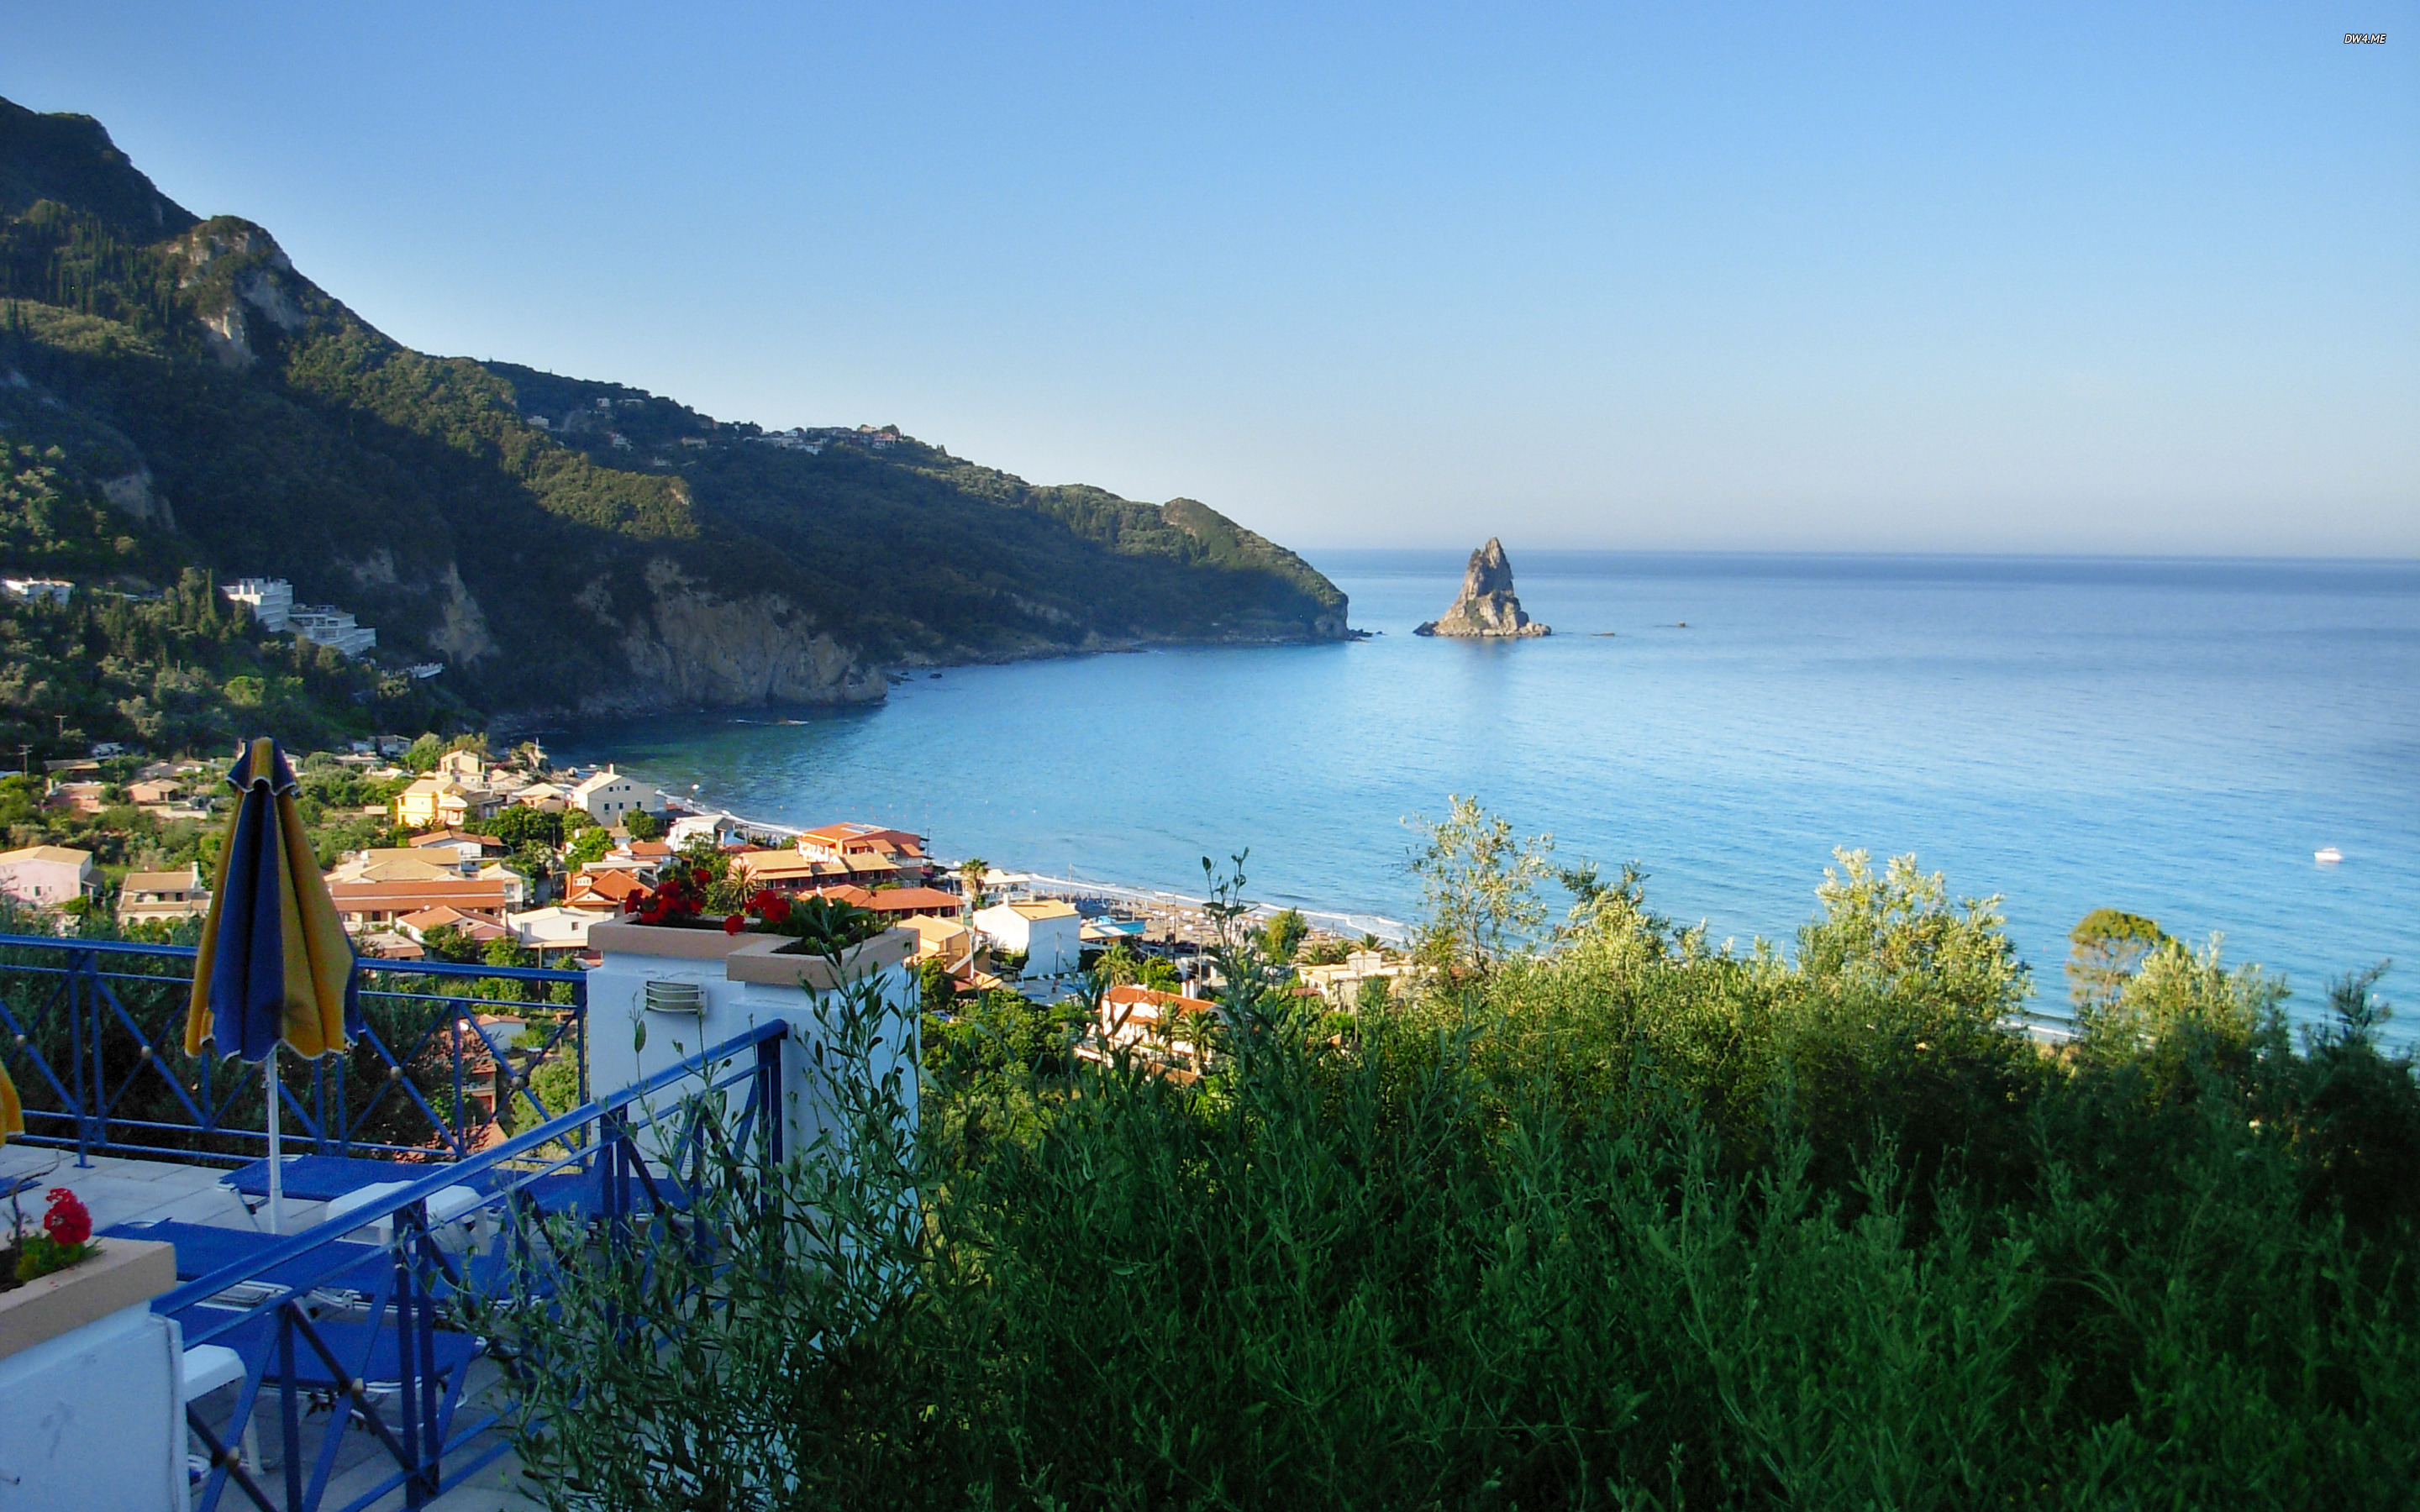 Greece Beach Wallpaper: Greece Wallpapers, Pictures, Images